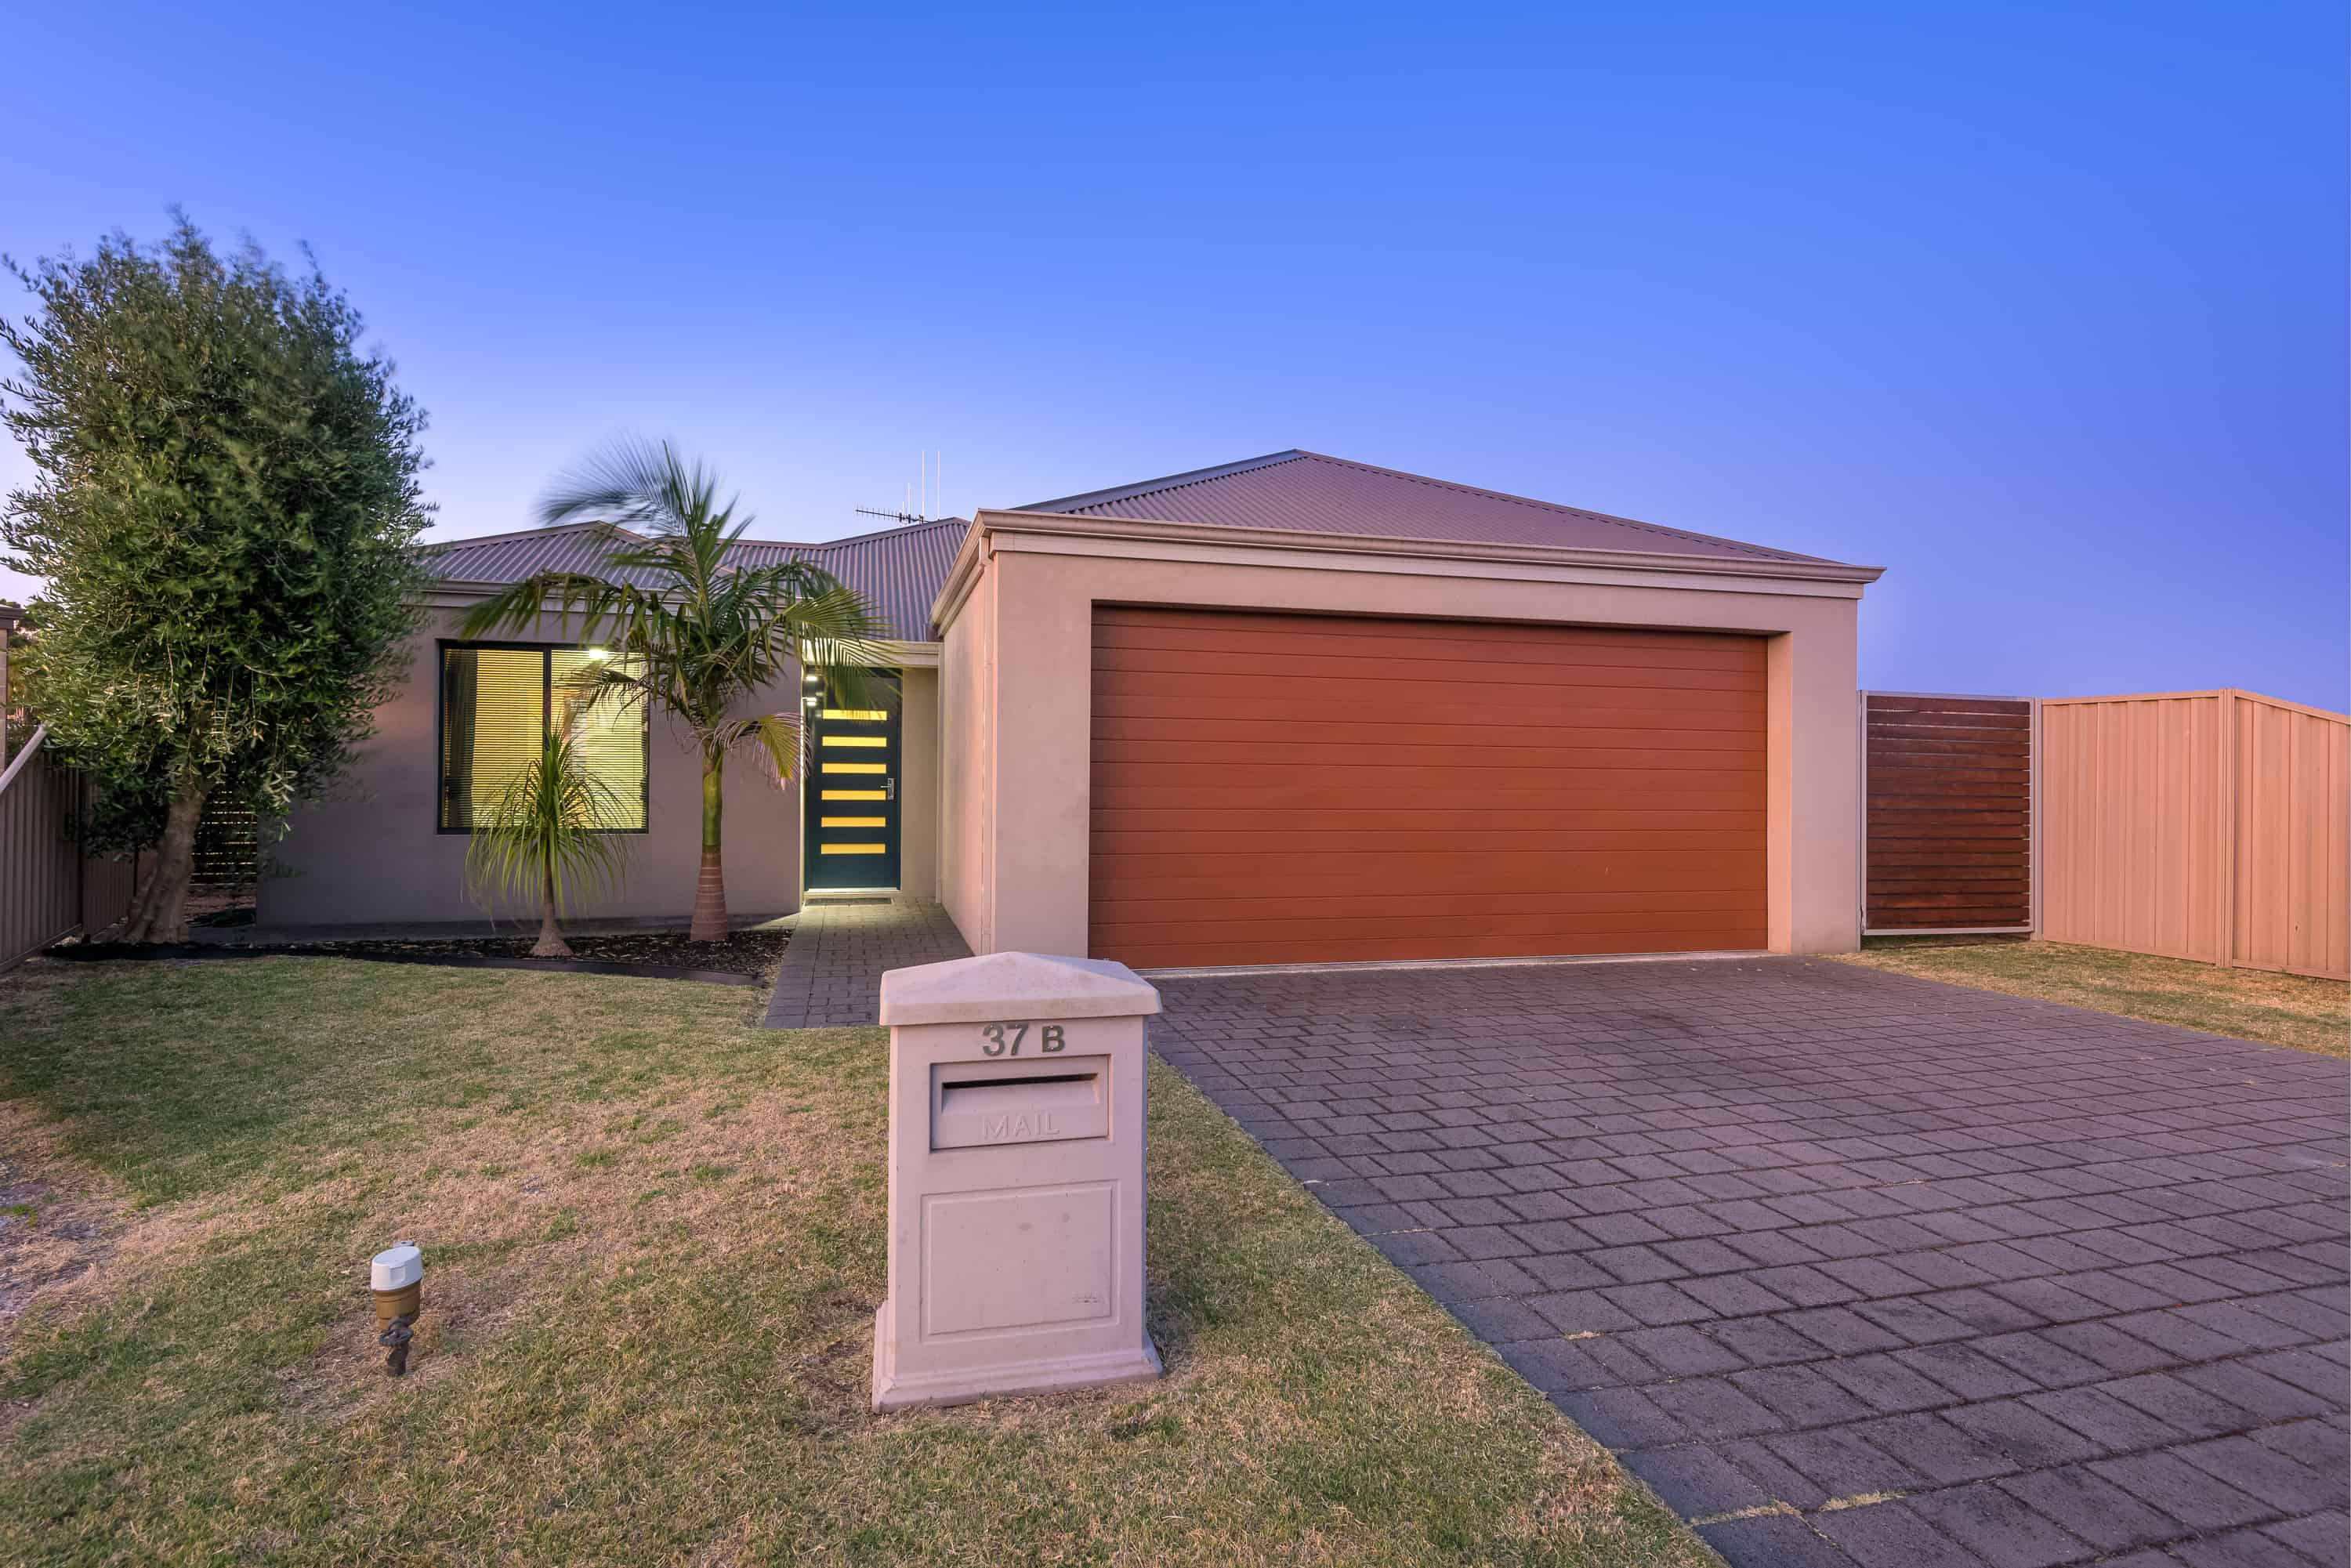 37B Windermere Road, Lower King